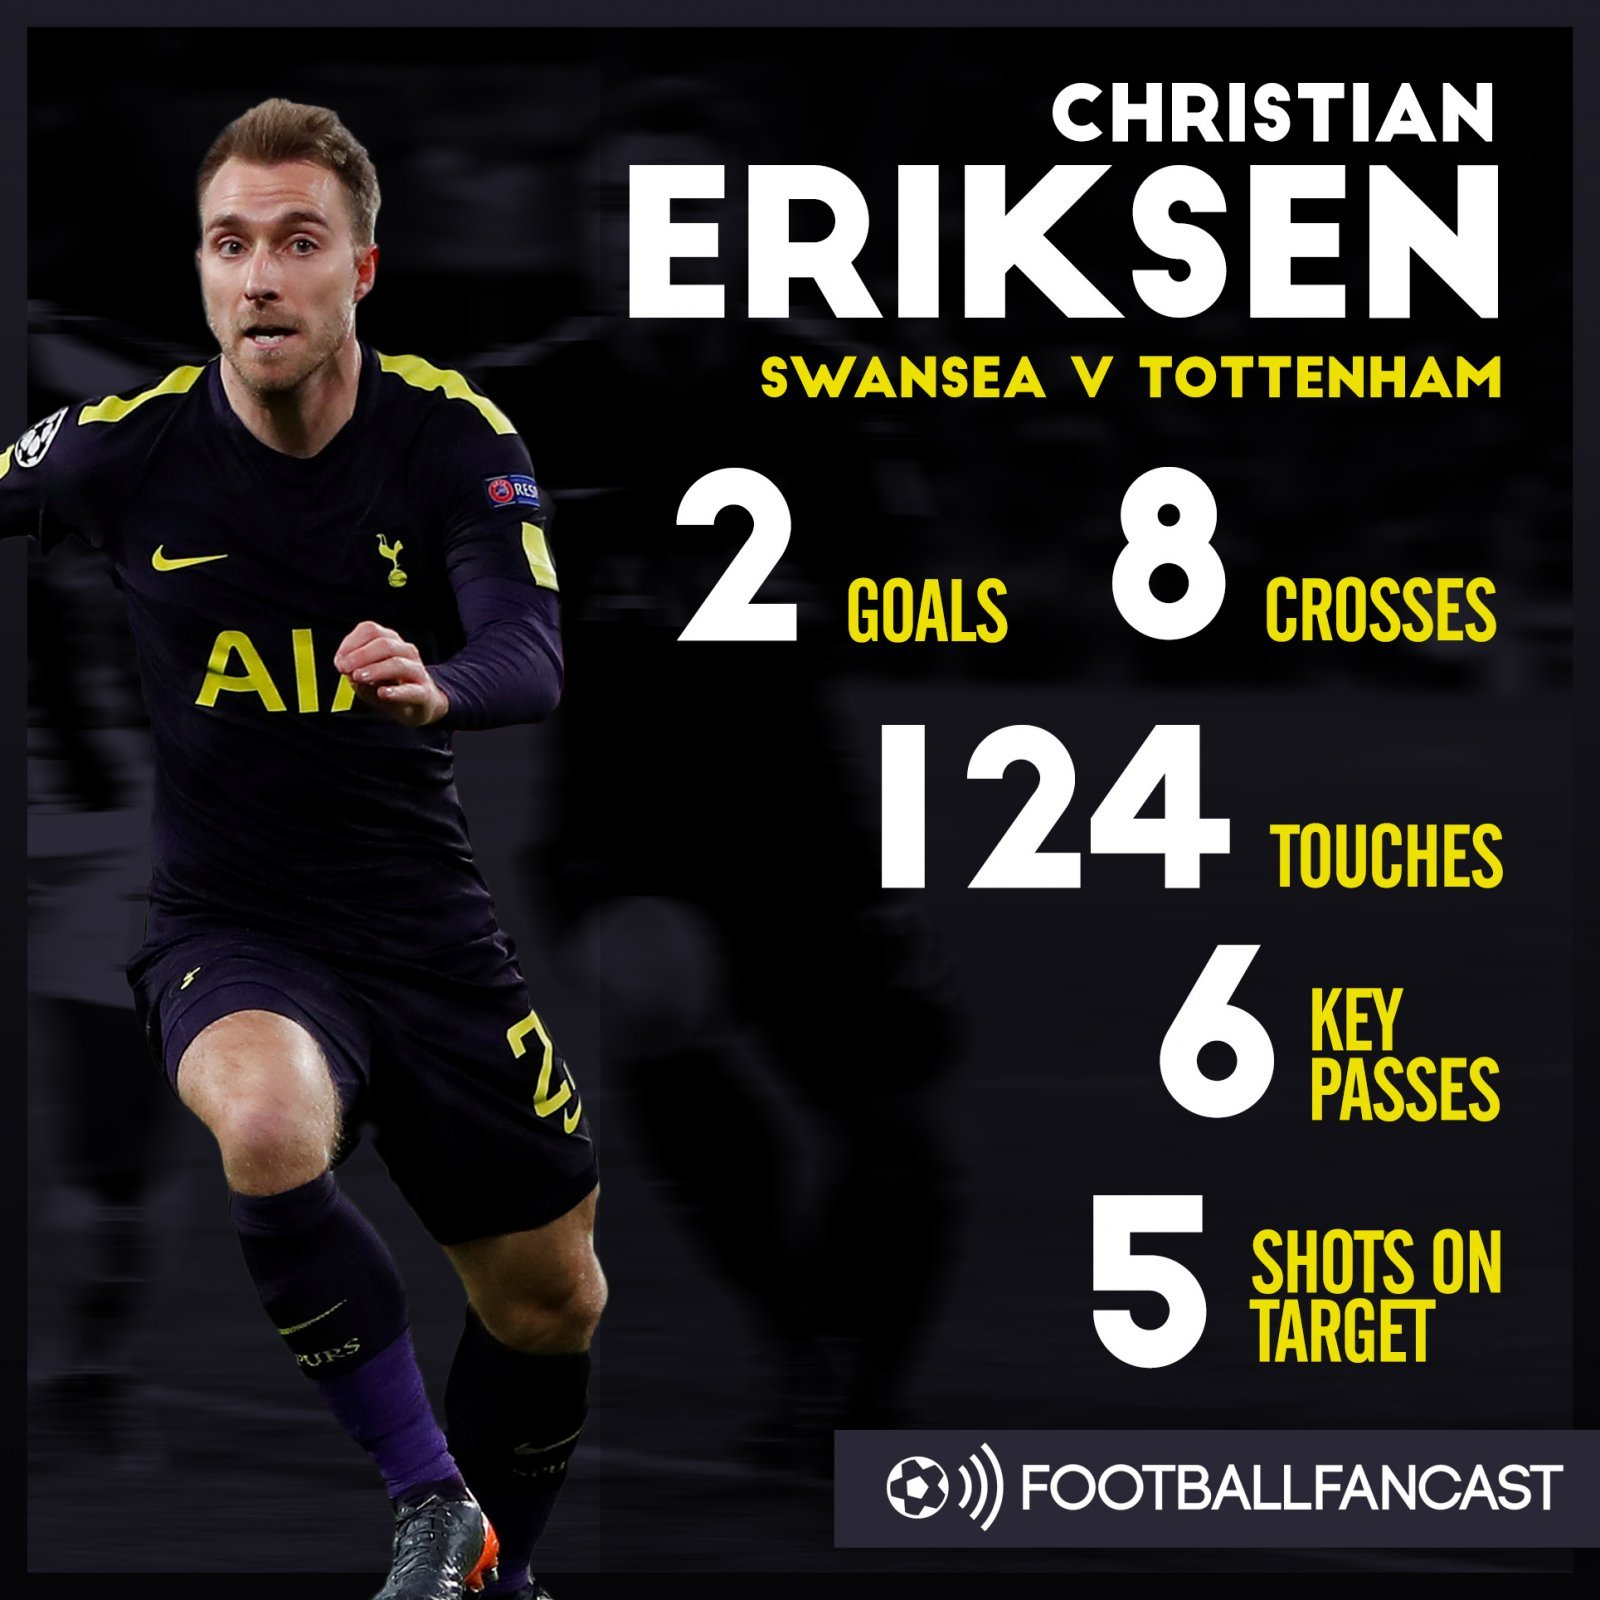 Who Will Lead The Attack For Tottenham In The Absence Of: 5 Shots On Target, 6 Key Passes: £63m-rated Spurs Ace Was